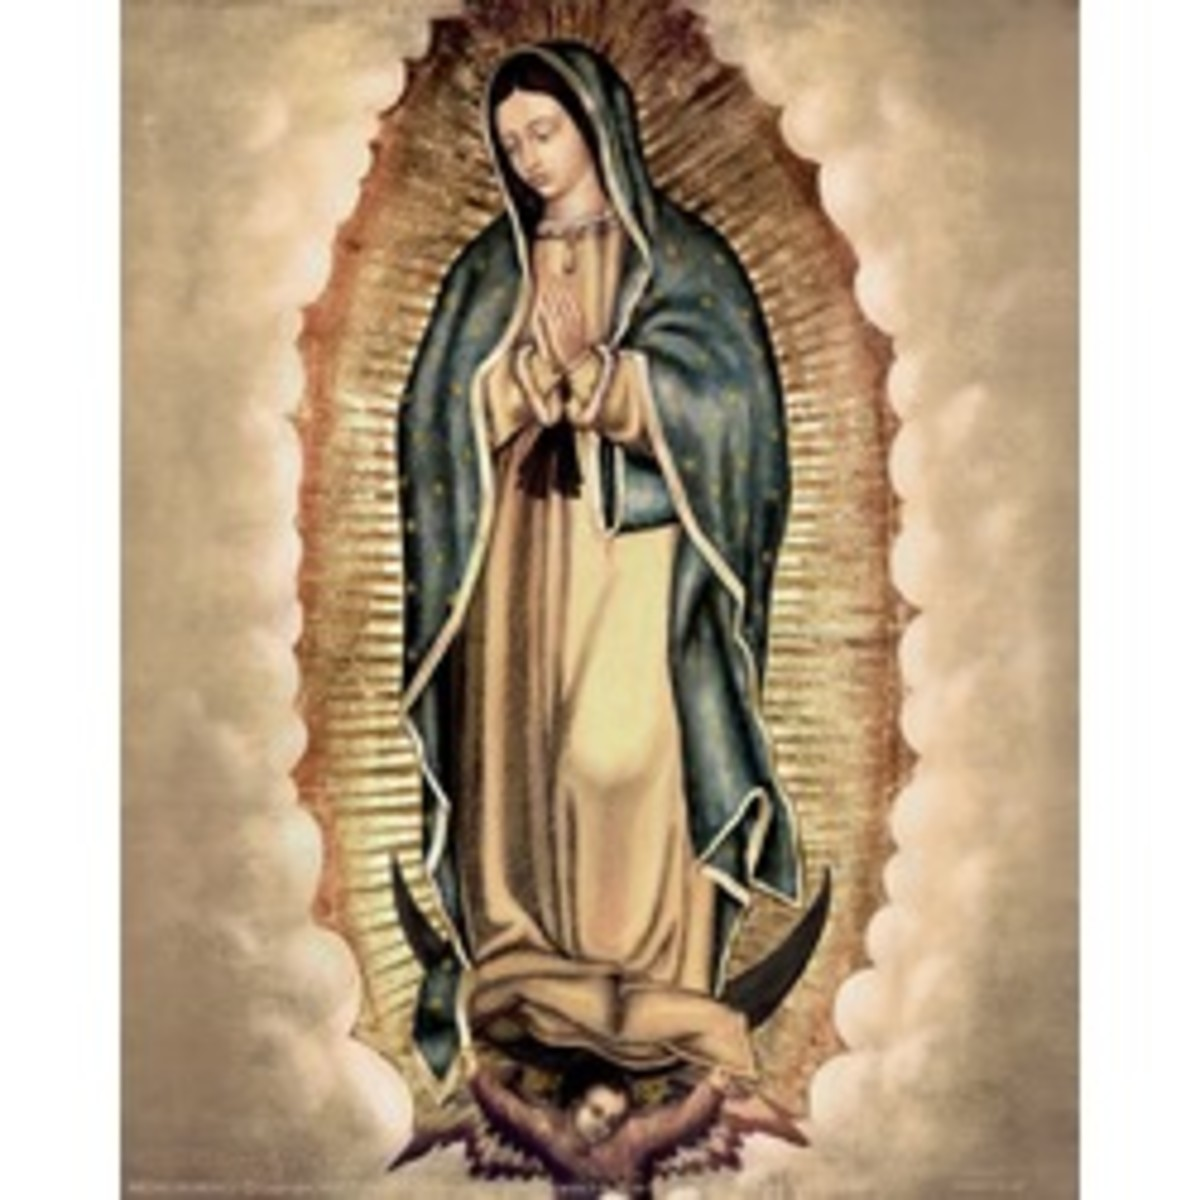 Lady of Guadalupe art